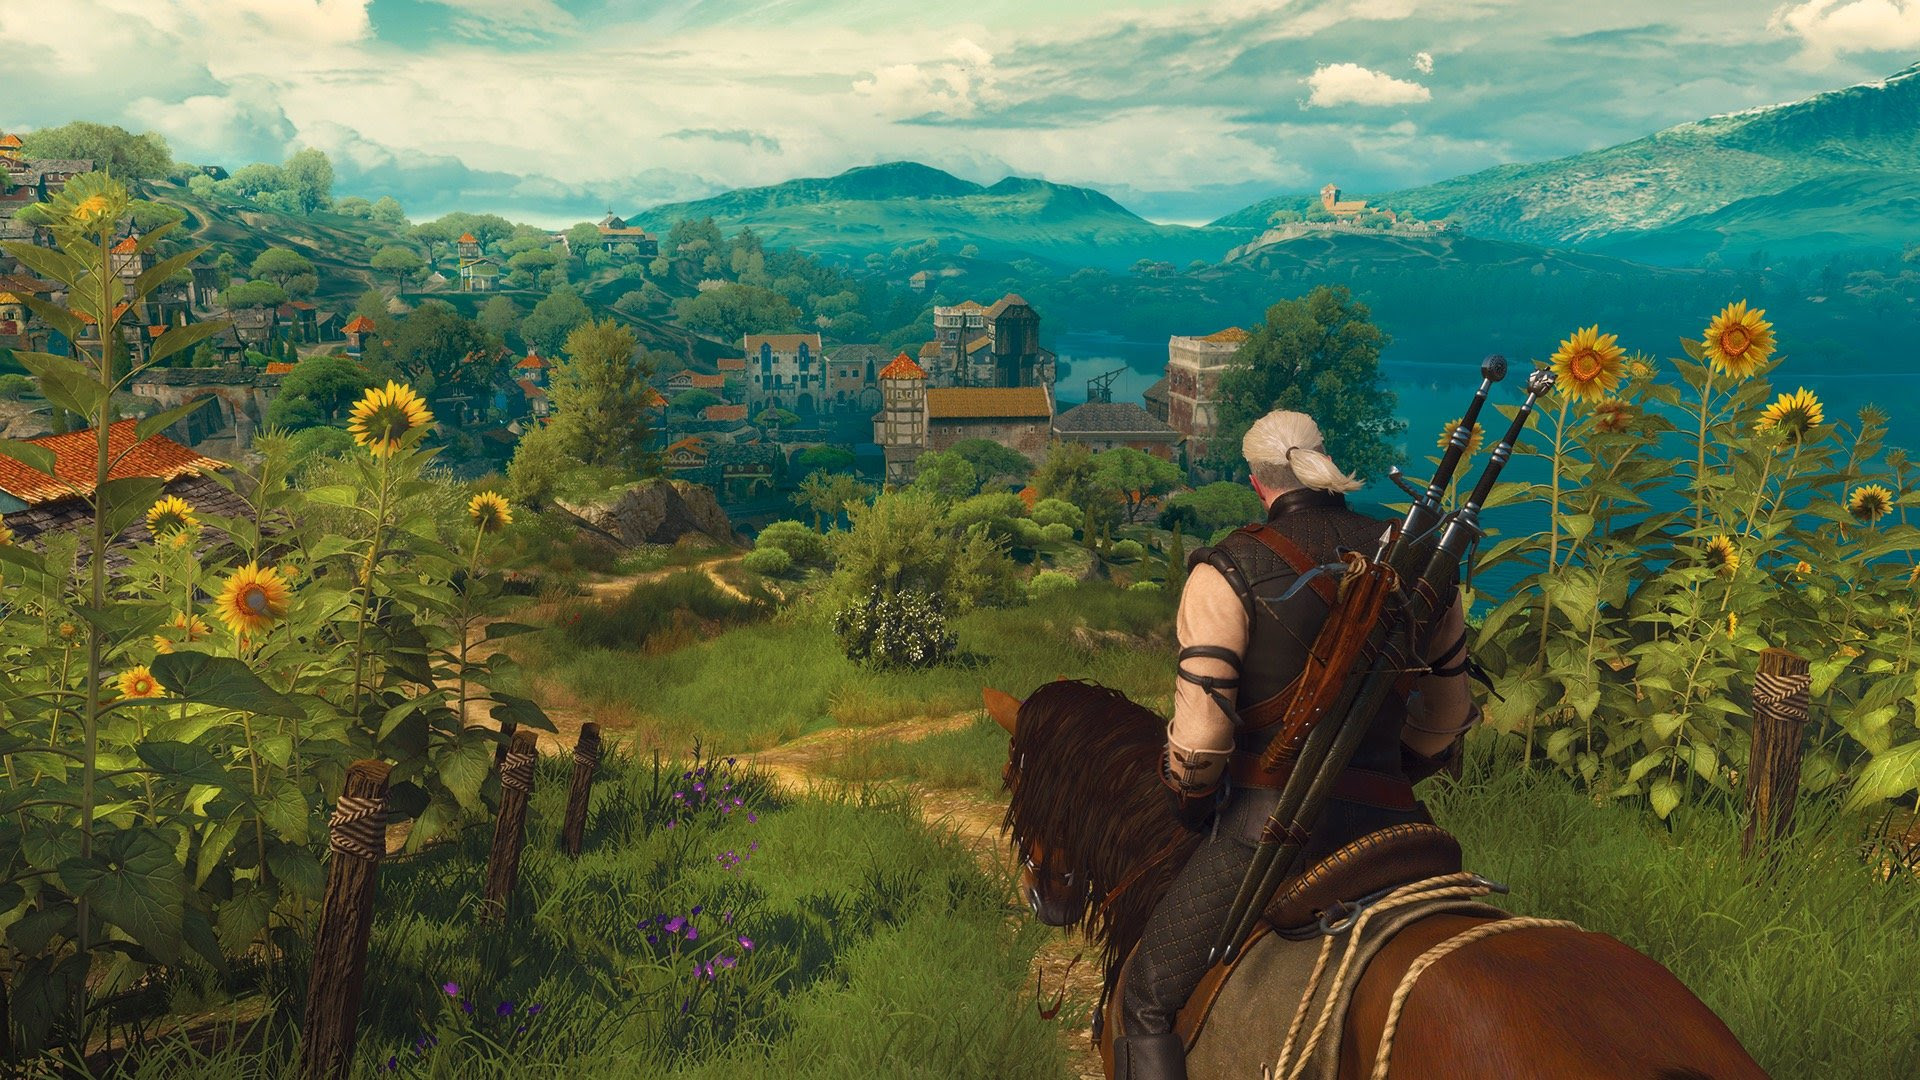 The Witcher is coming to Netflix screenshot